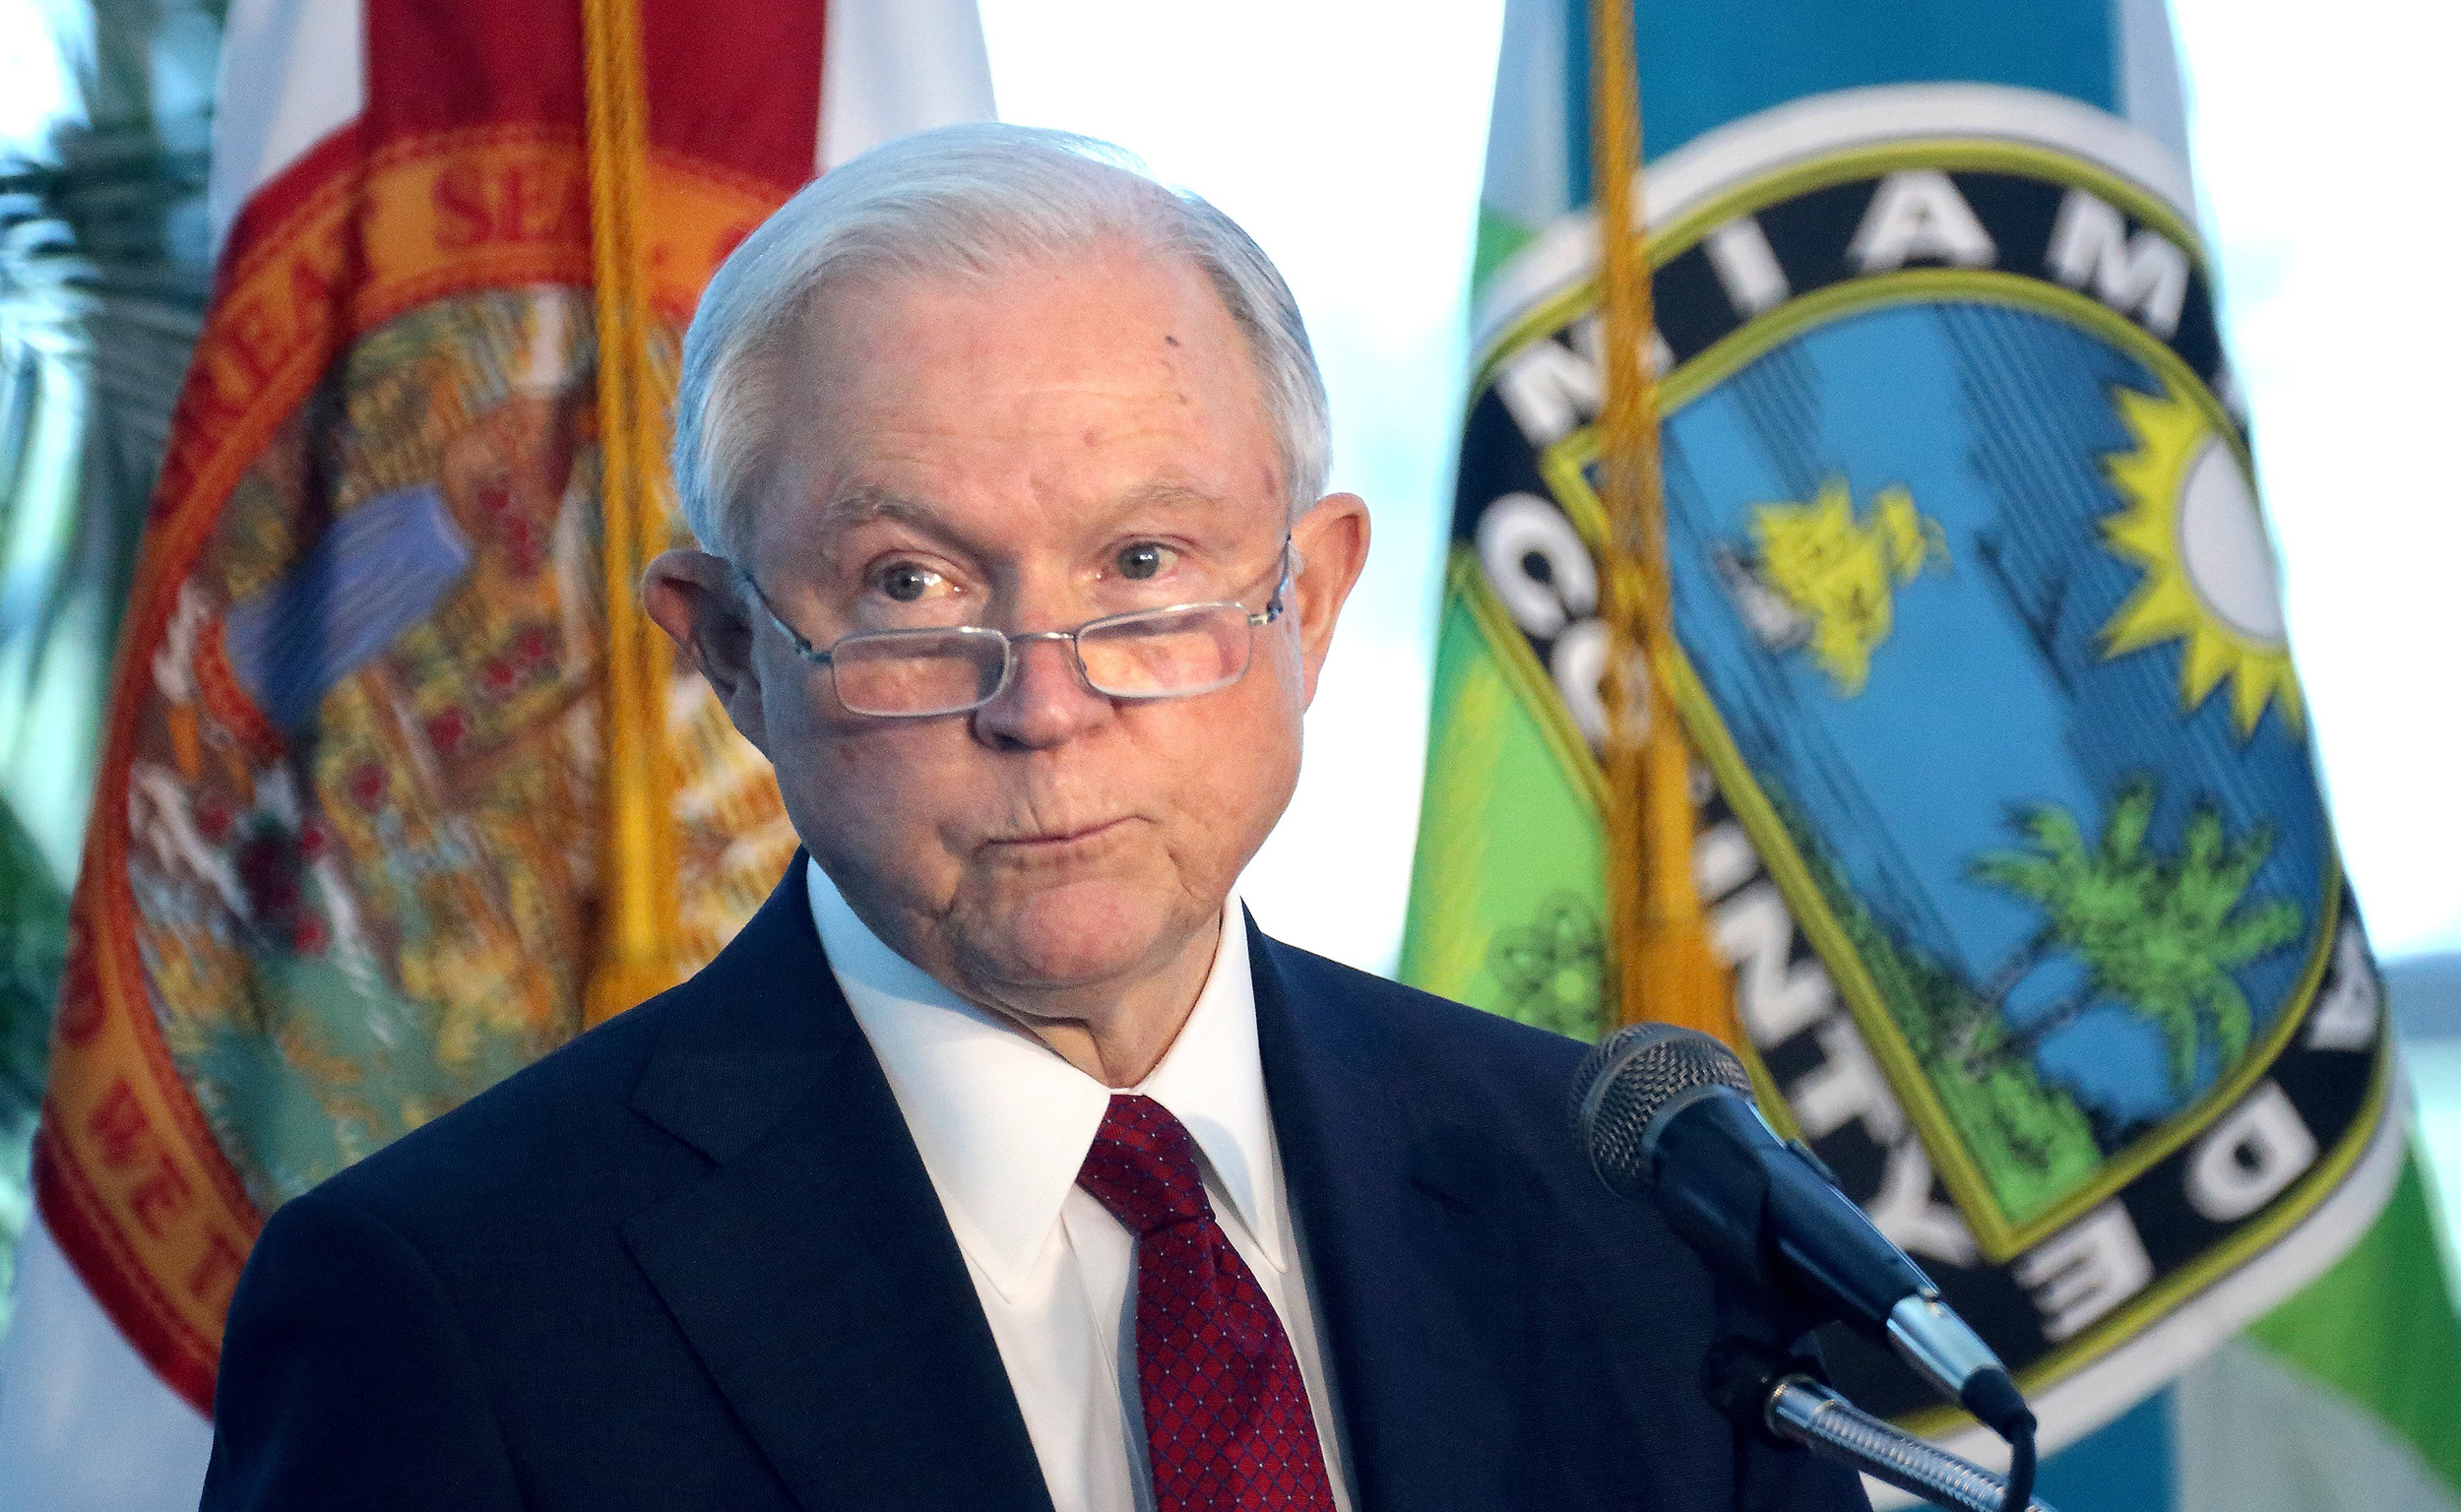 Sessions Can't Deny Grant Money, Judge Rules